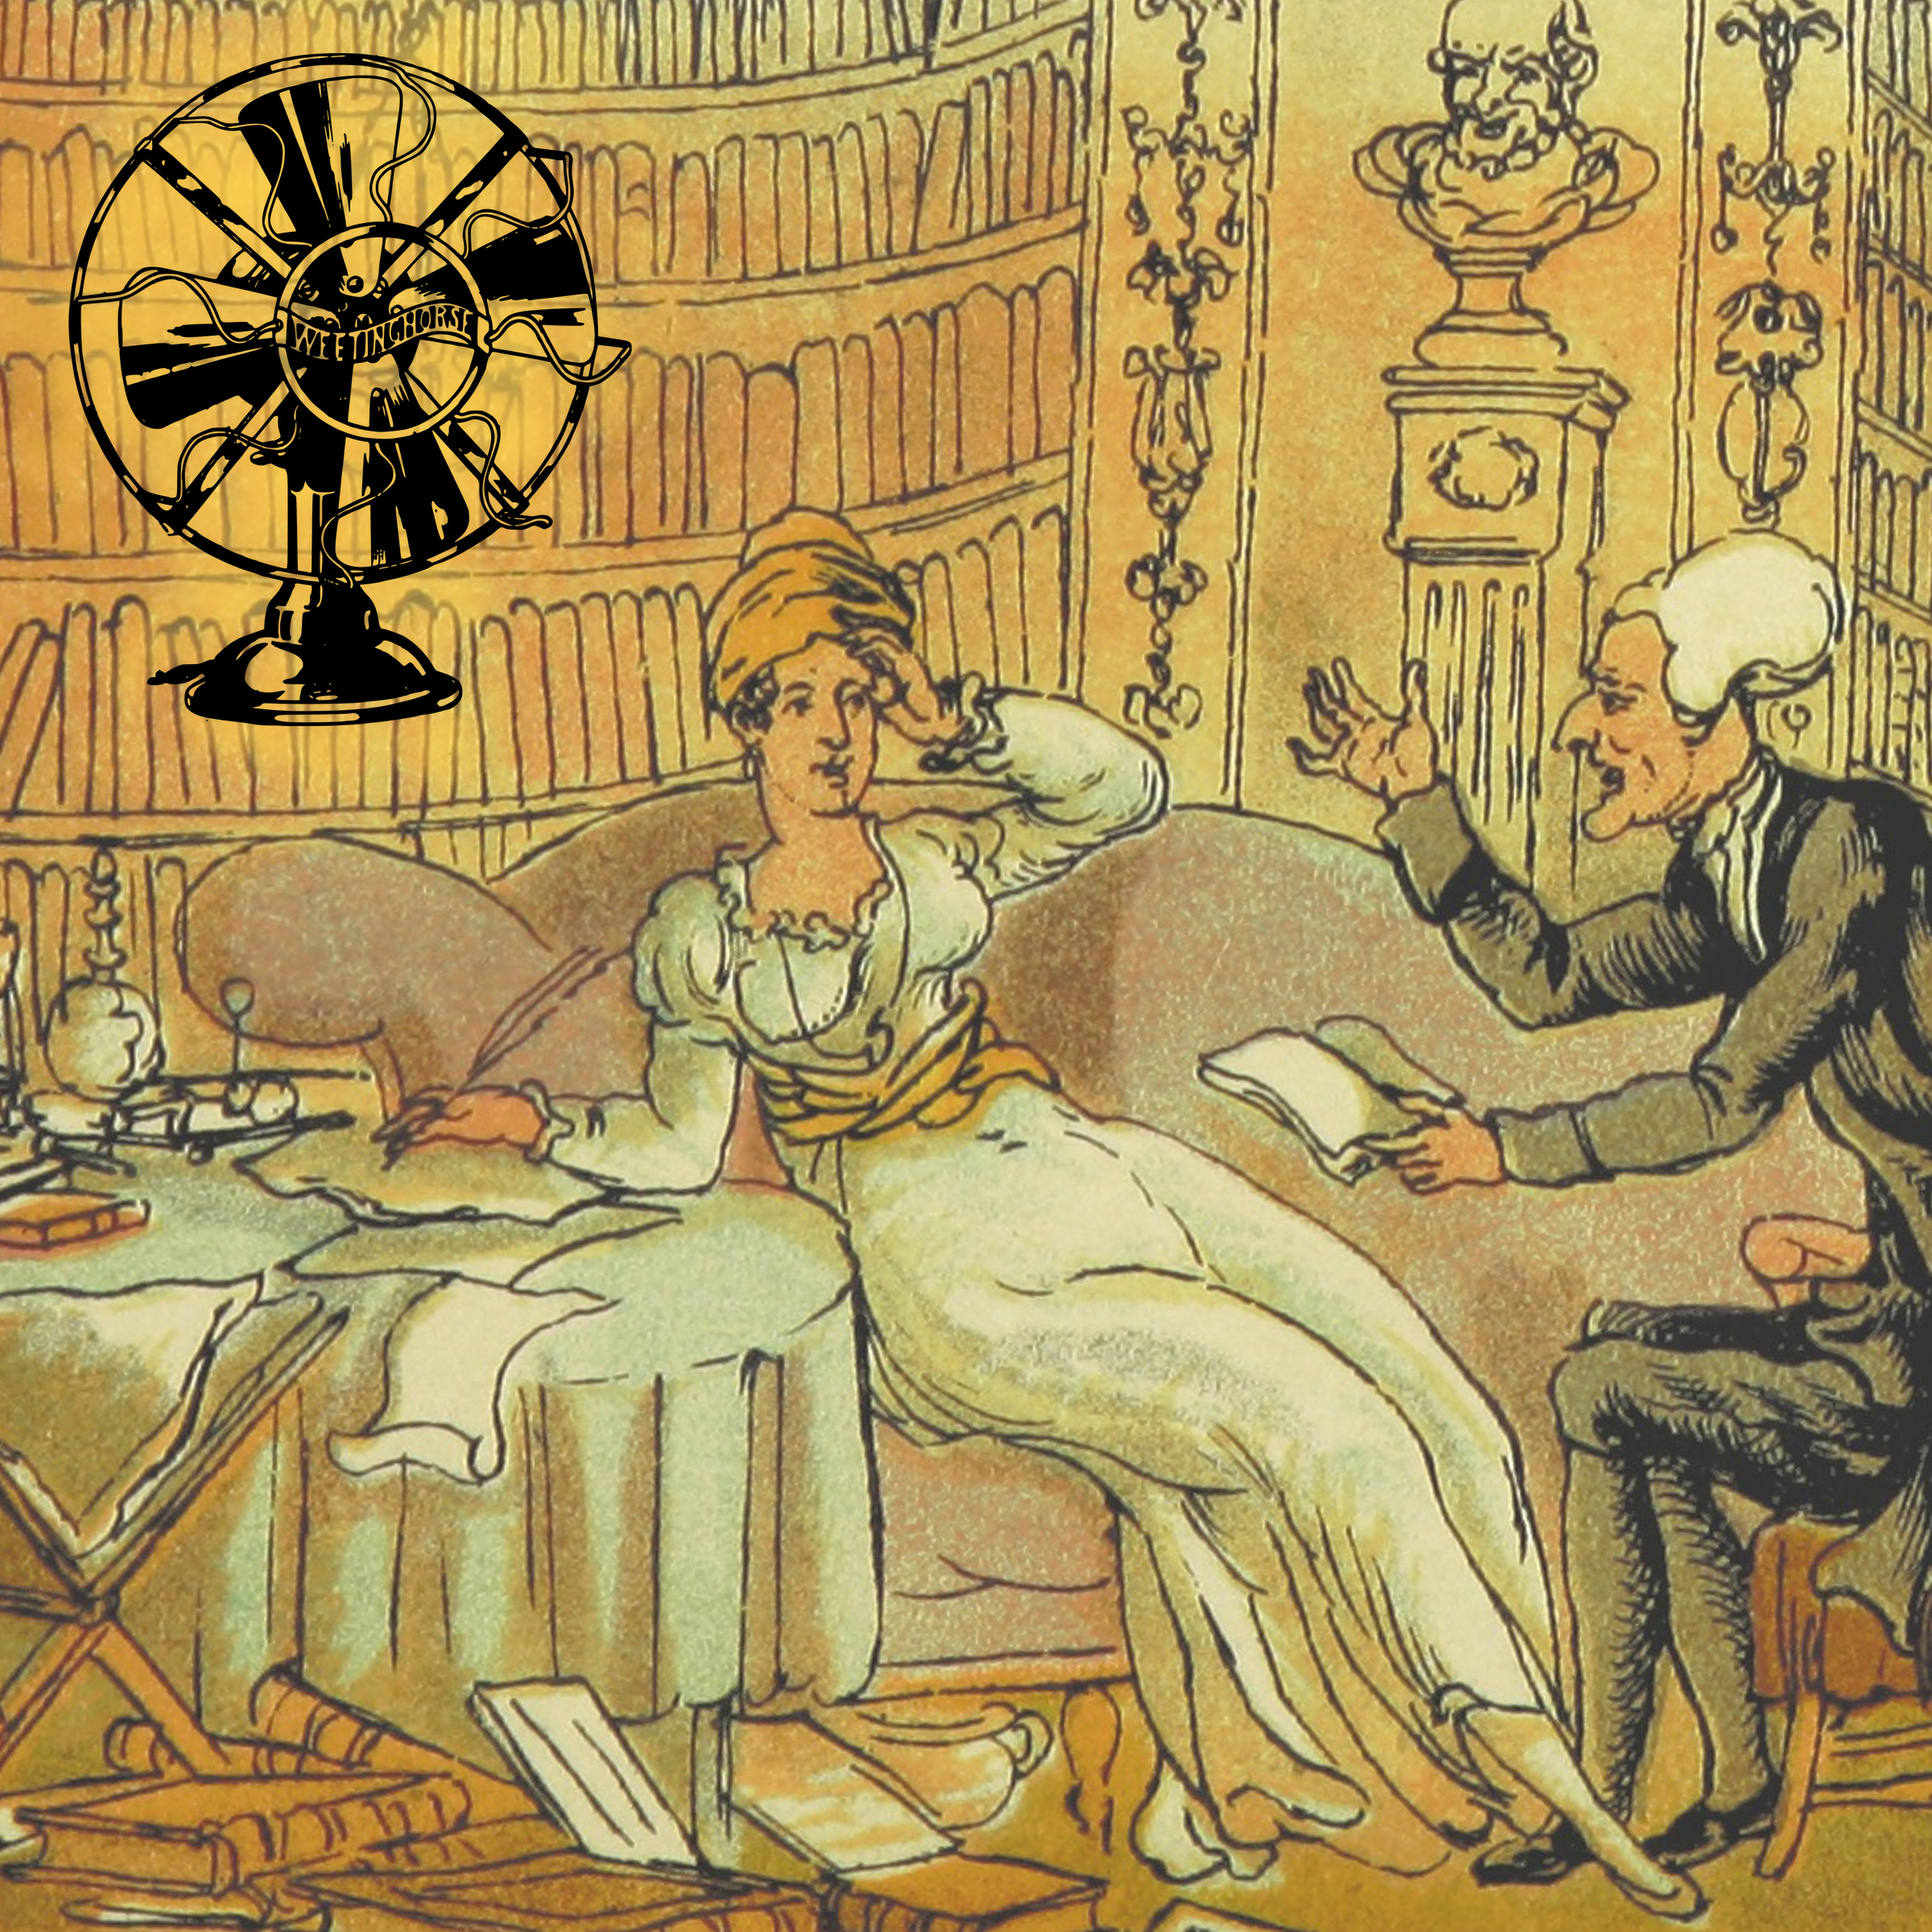 Episode 10's cover: an old illustration of a woman writing and appearing to swoon into a sofa as a man apparently confronts her about what she has written.